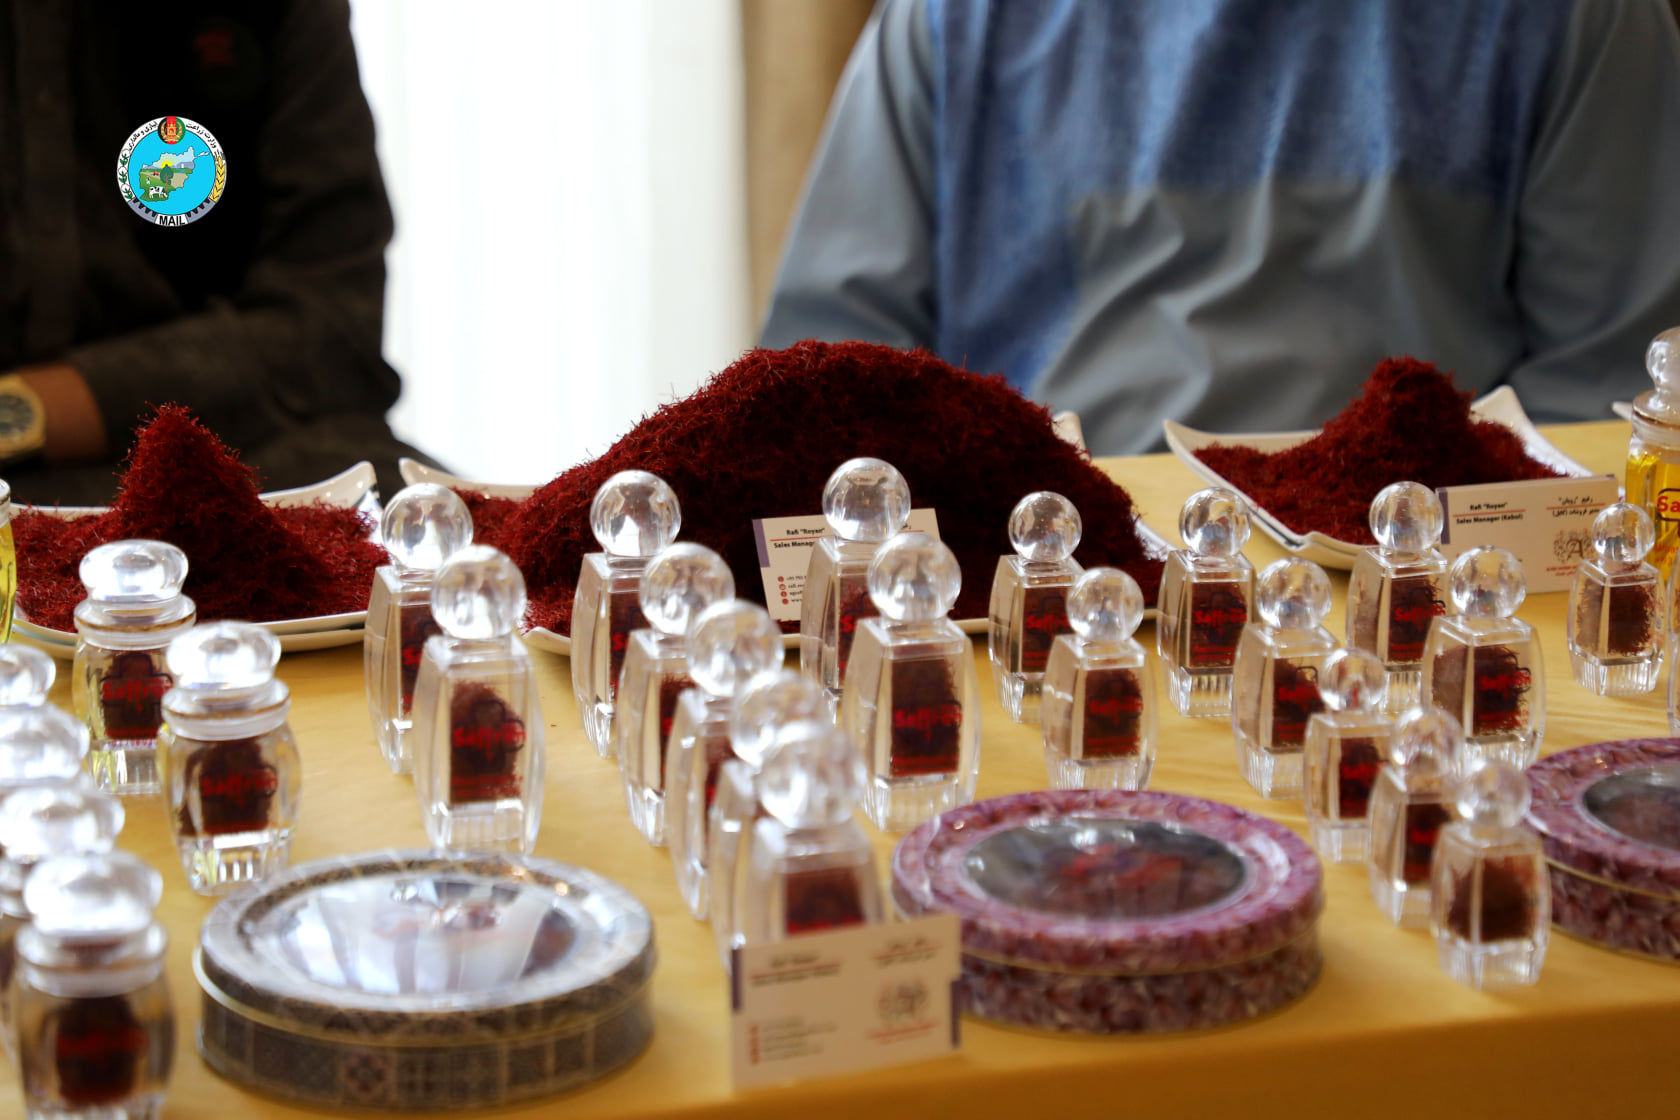 Large exhibition of saffron according to the picture